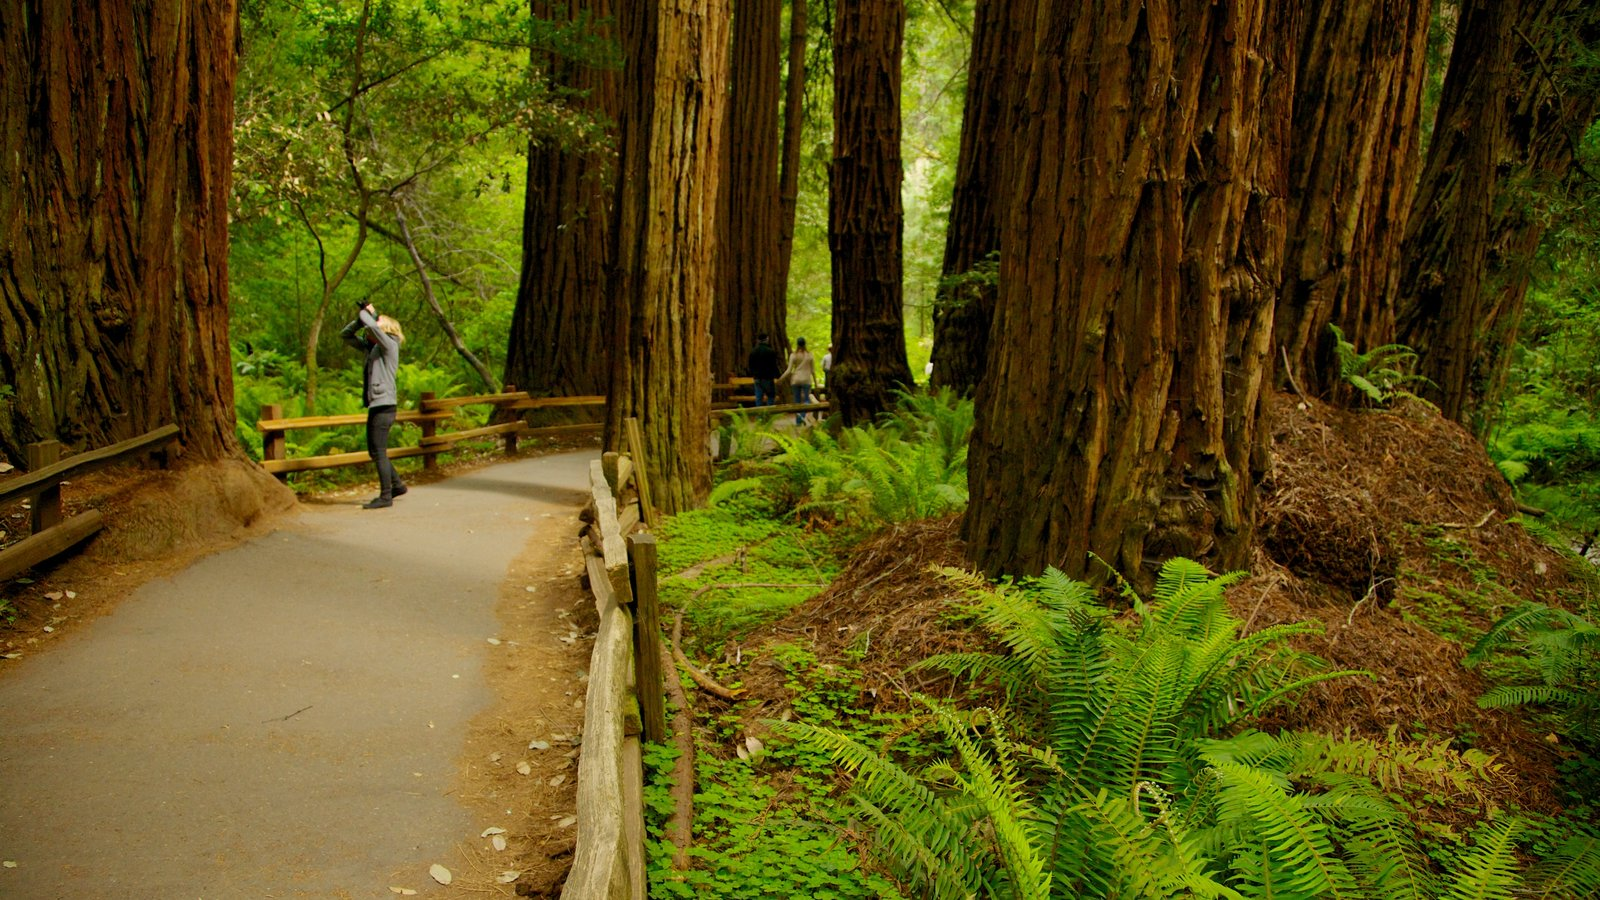 Muir Woods showing a park, landscape views and hiking or walking